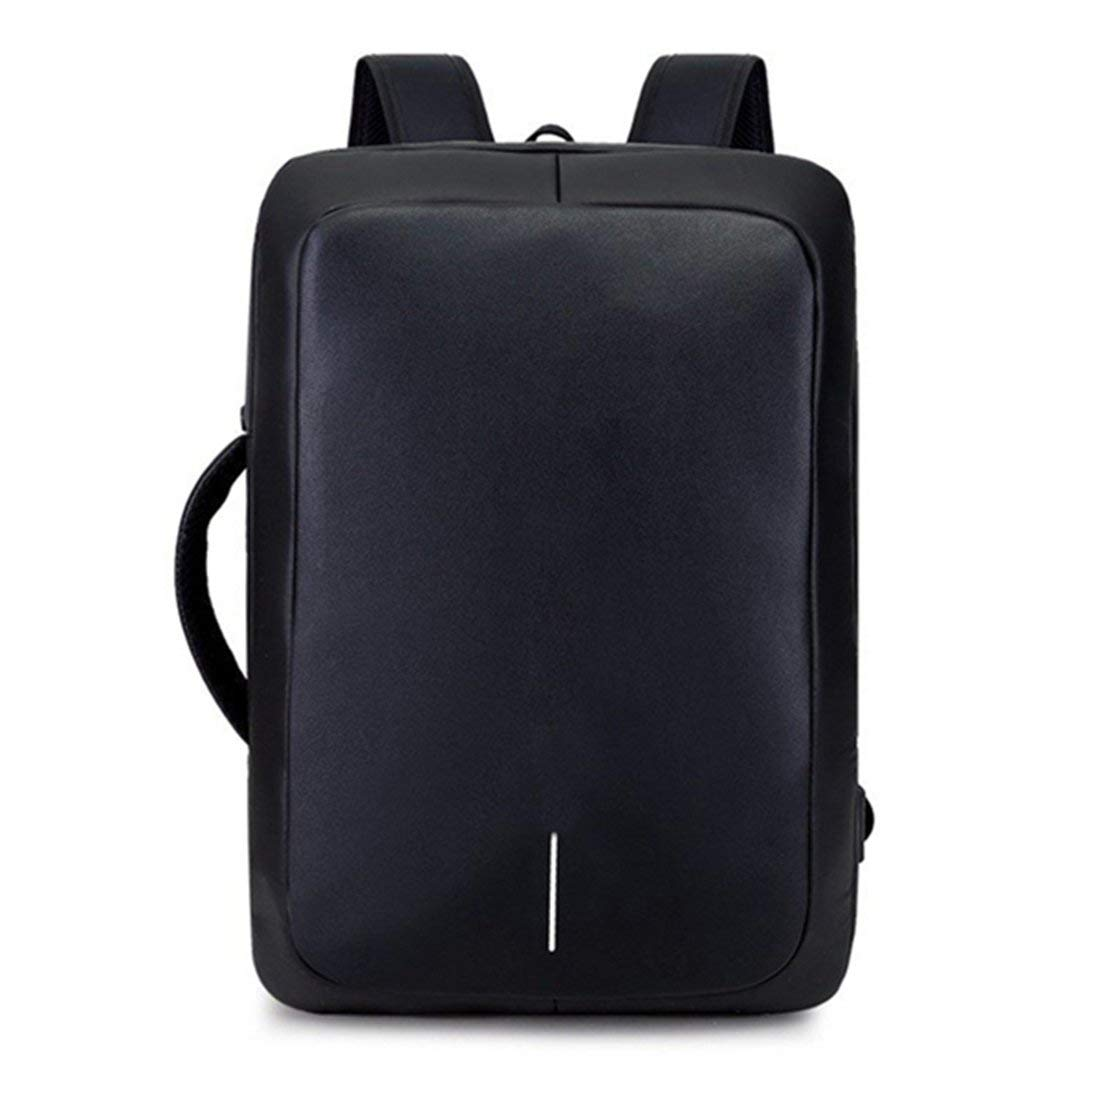 TOOGOO Black new fashion couple USB shoulder bag multi-function breathable pu leather travel backpack solid color men's bag